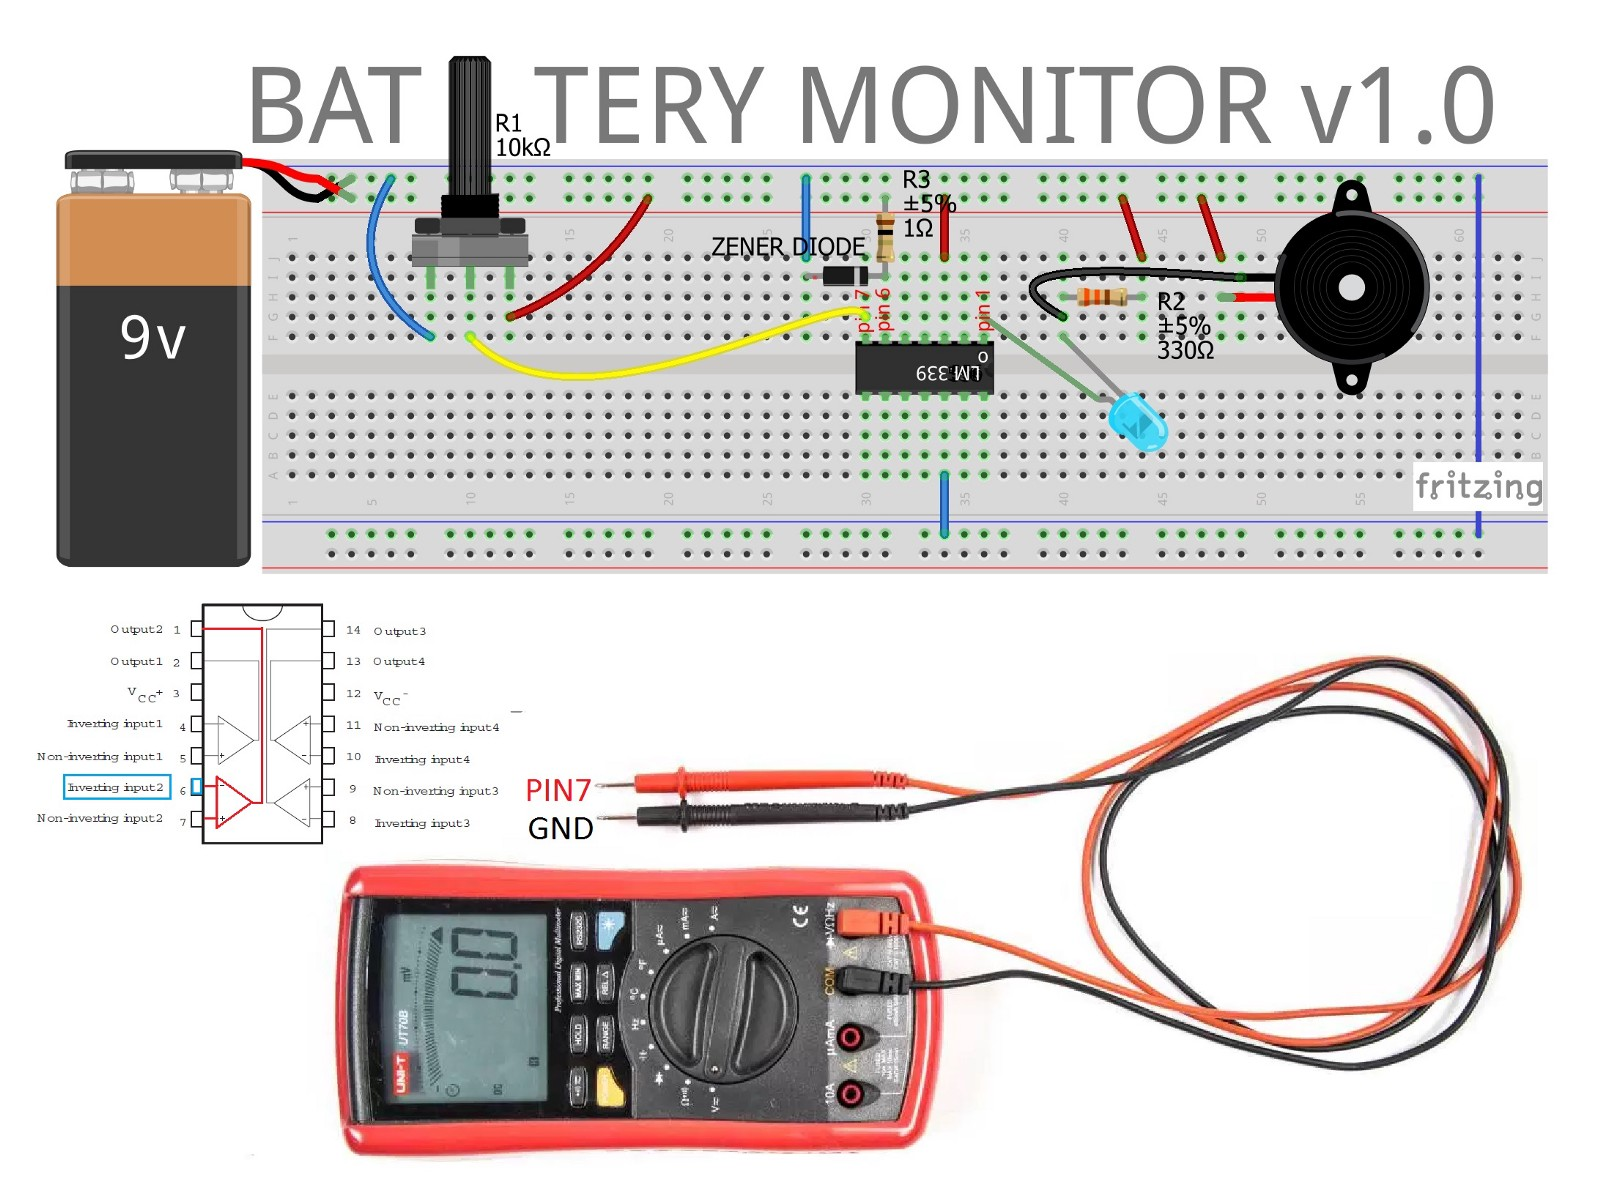 Battery Monitor Circuit Jungletronics Medium Power Schematic Once Established Limits Higher 9 Volts And Lower V 6 The Until Its Voltage Drops Below 6v Led Lights Triggers Alarm